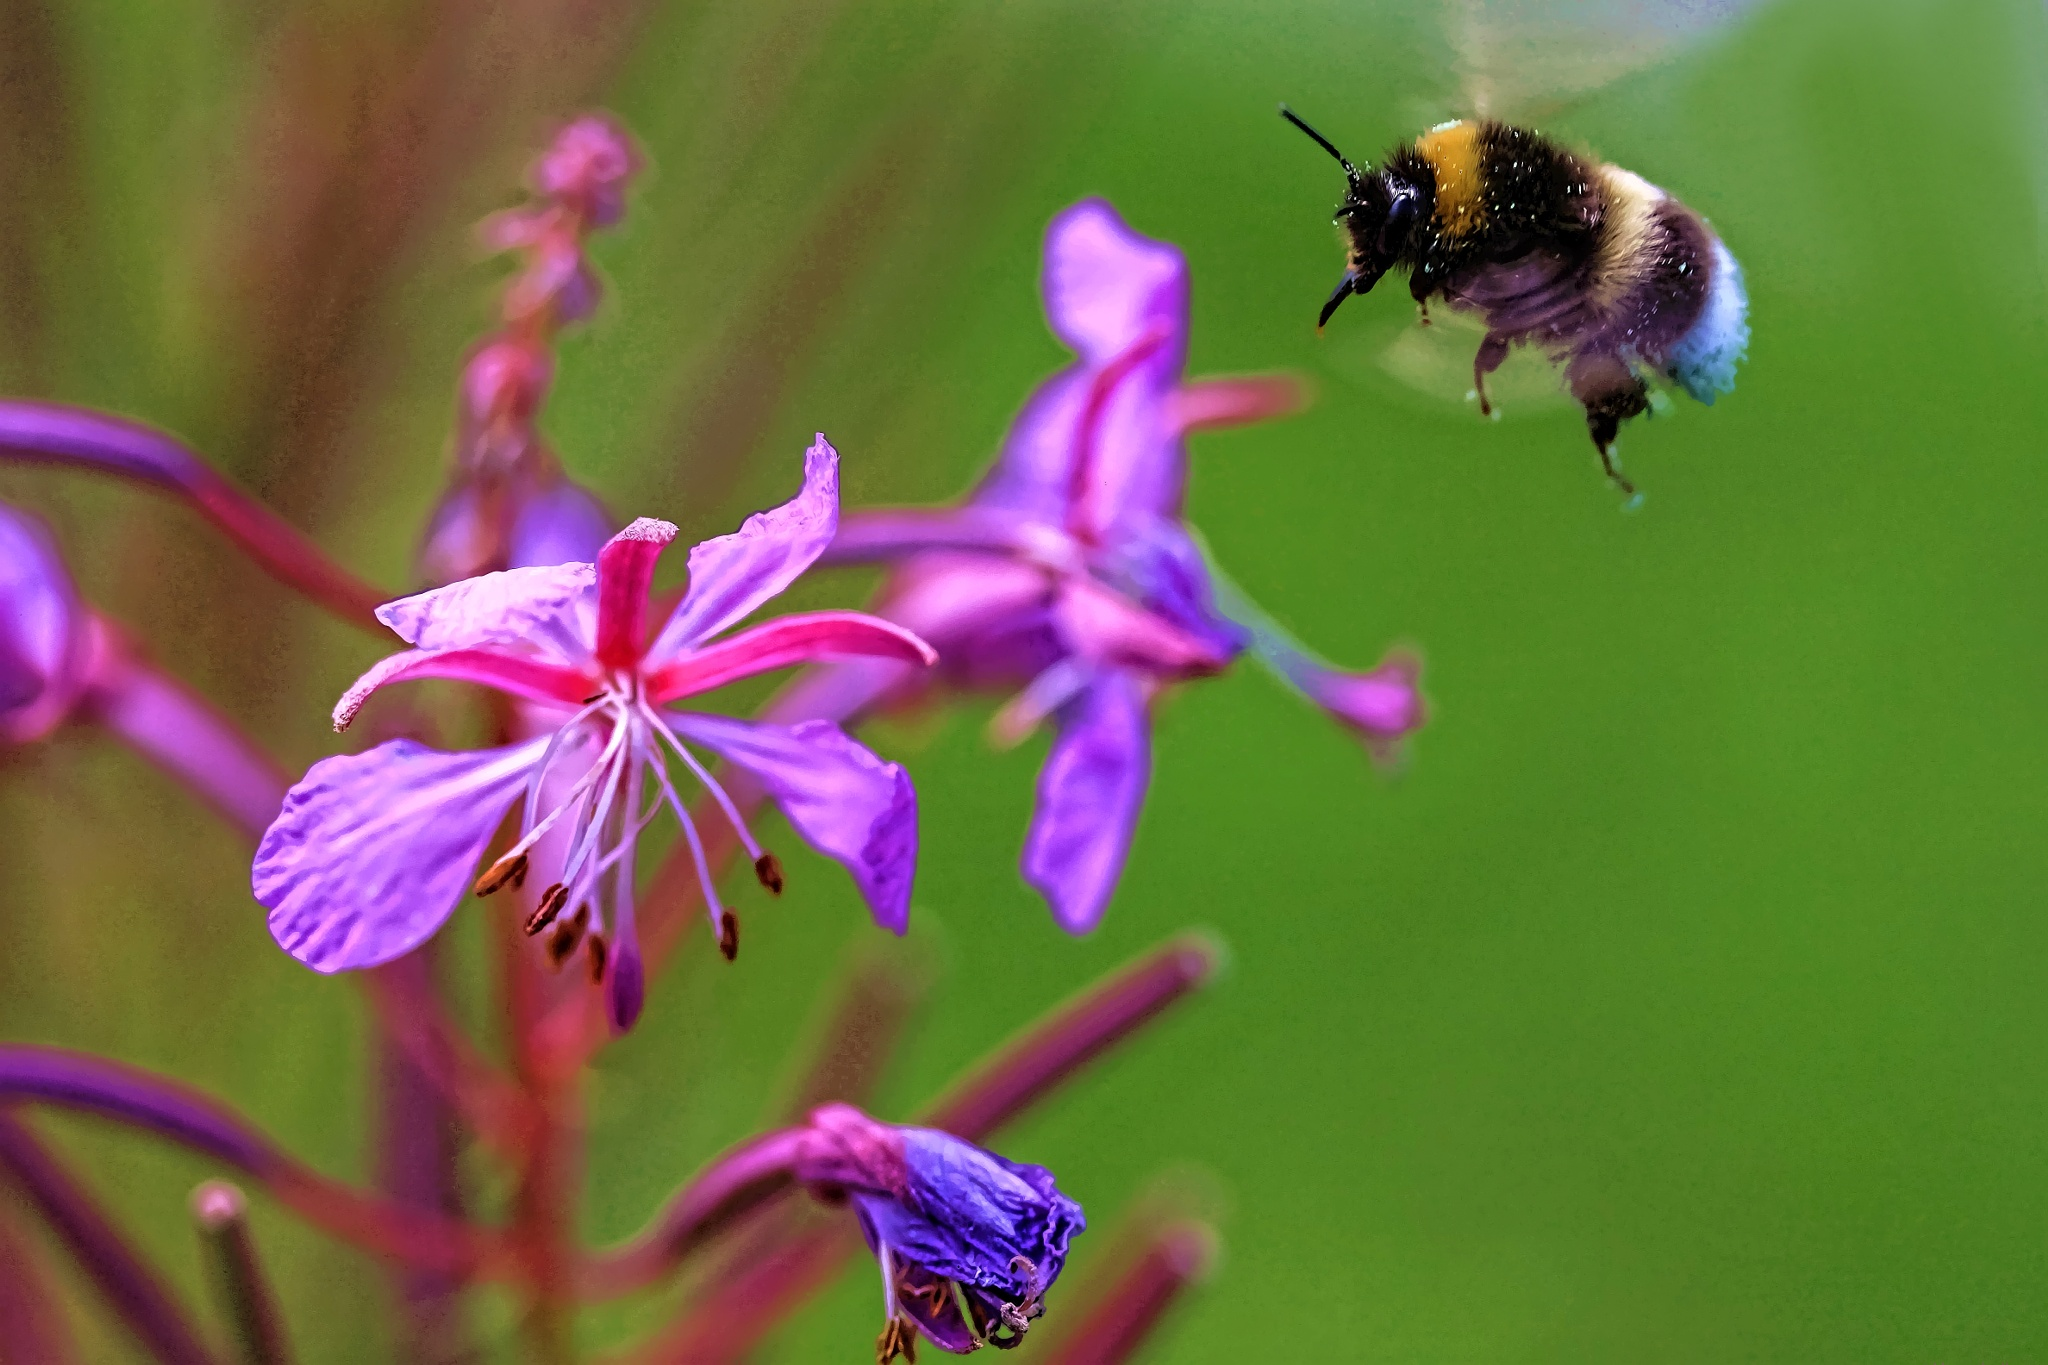 The Humble Bee by sten.westling2